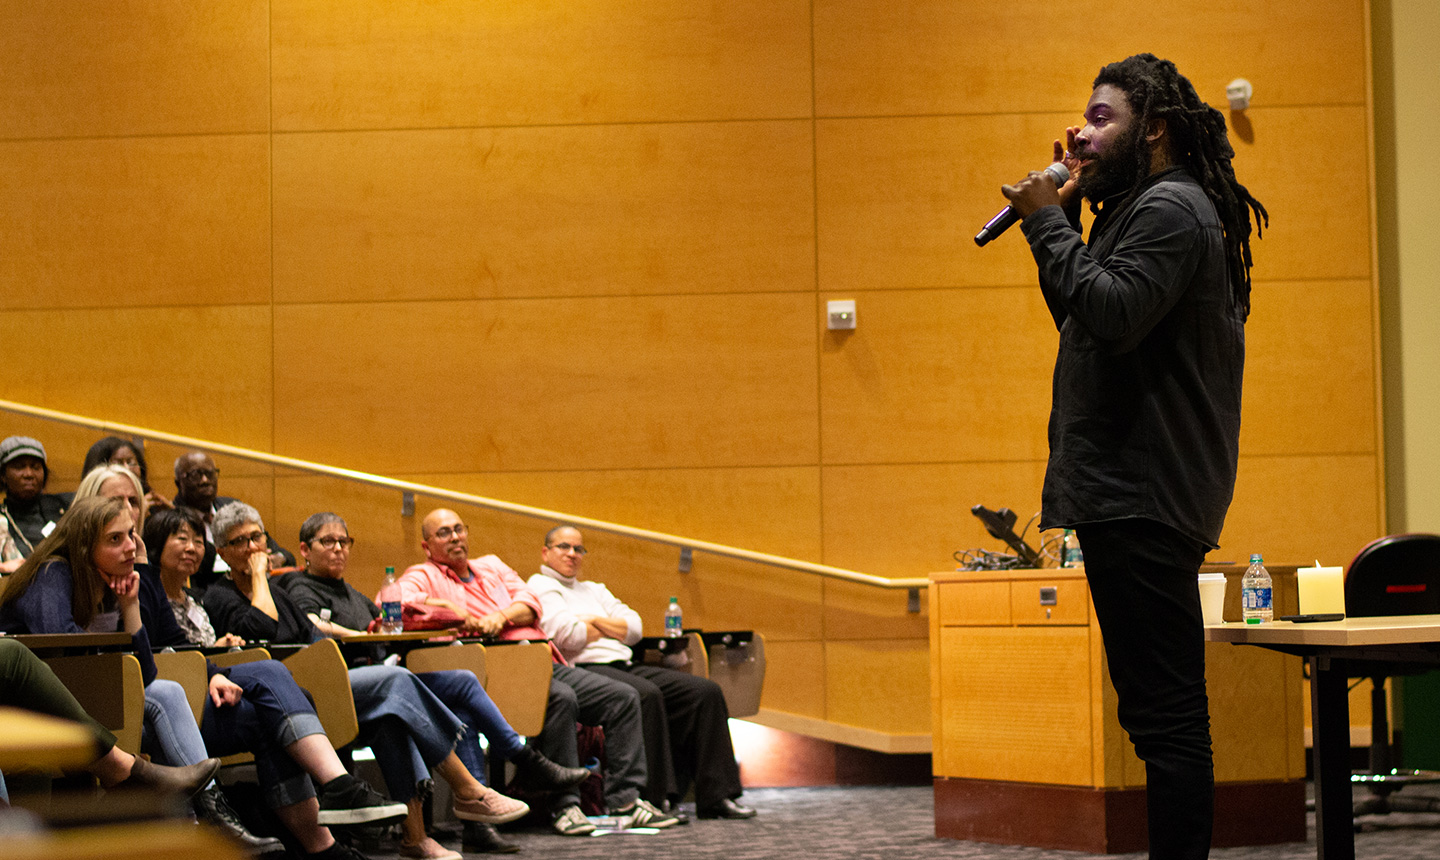 Jason Reynolds speaks